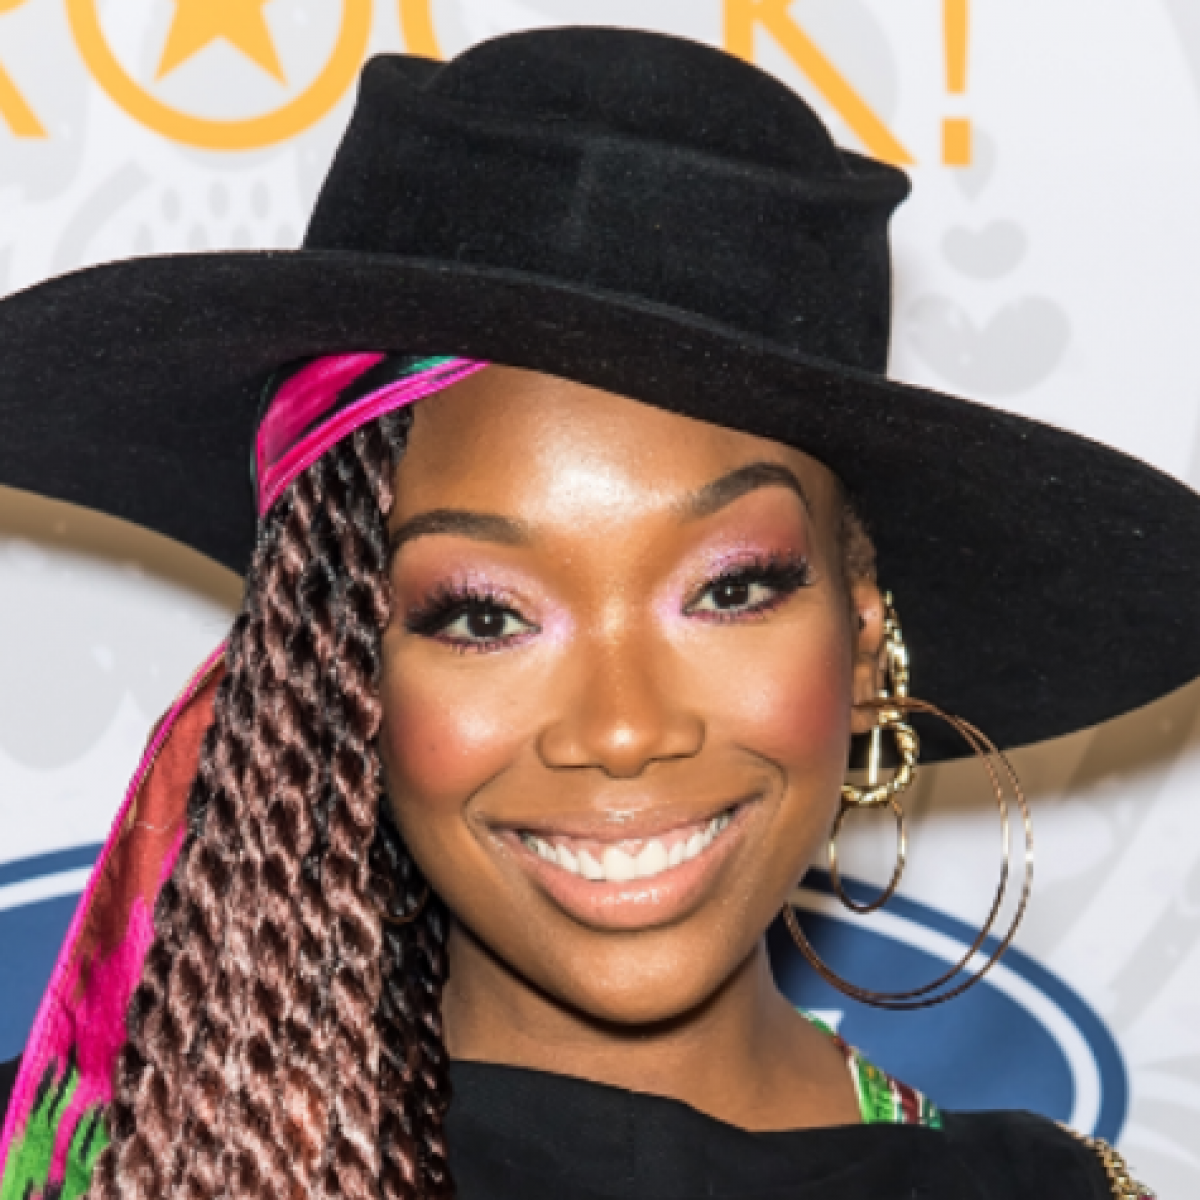 Brandy Stuns In Must-See Braids On The Cover Of New Album 'B7'